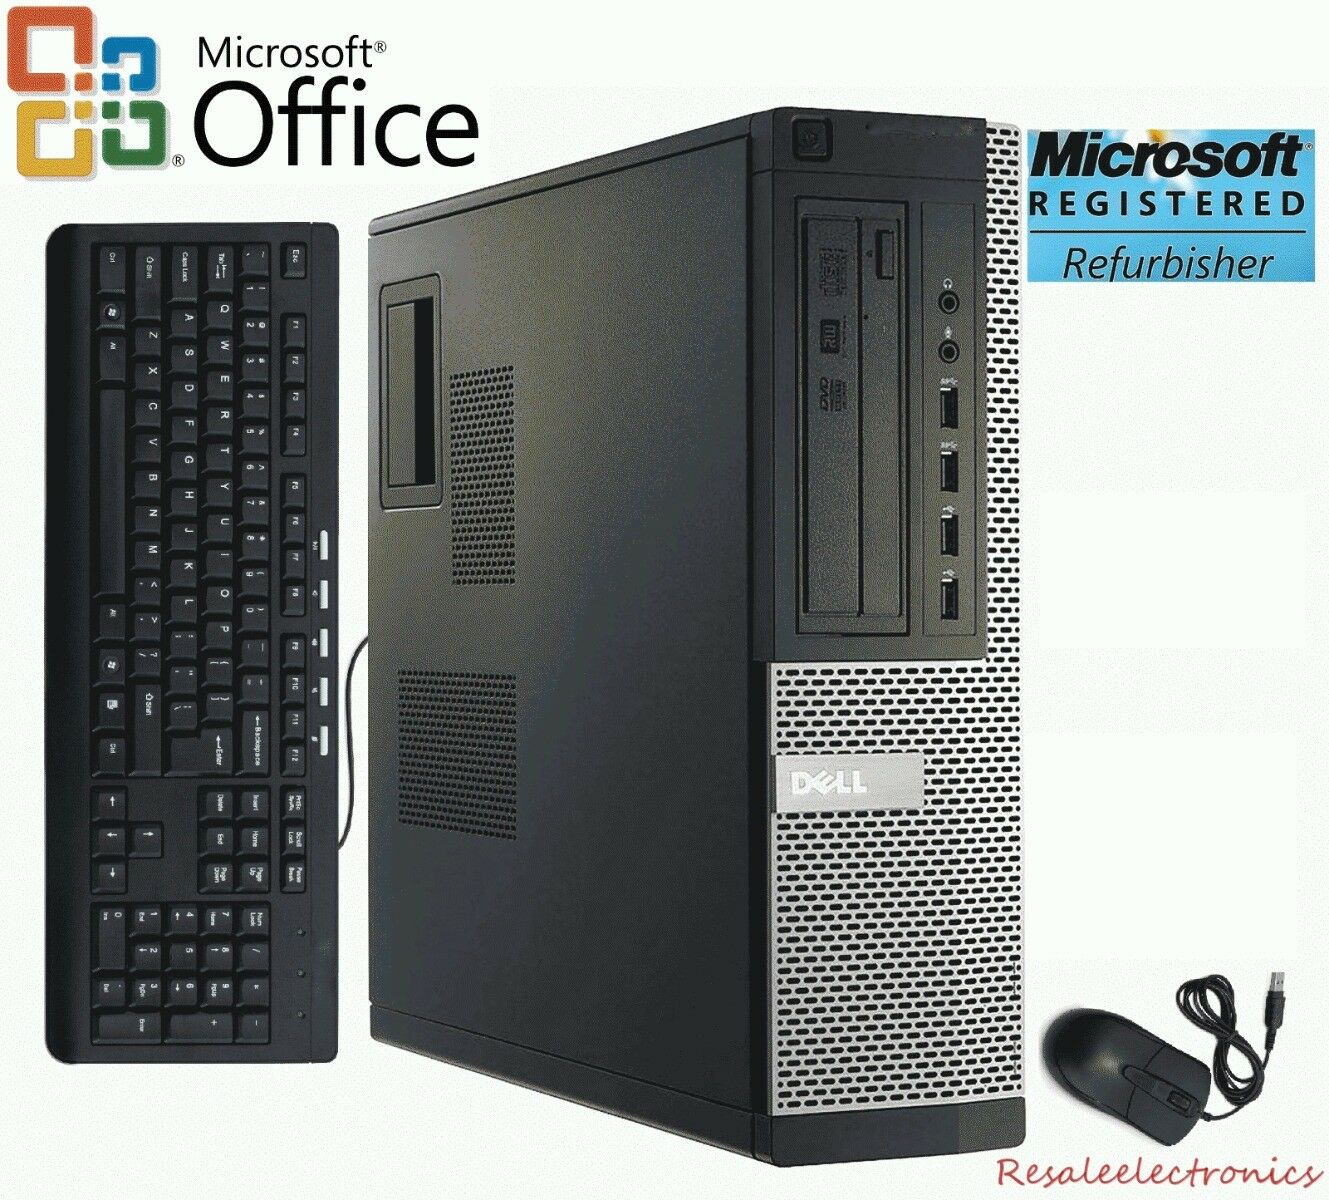 Fast Dell Desktop Computer Core i5 3.10Ghz Up To 1TB HDD Windows 10 Home or Pro